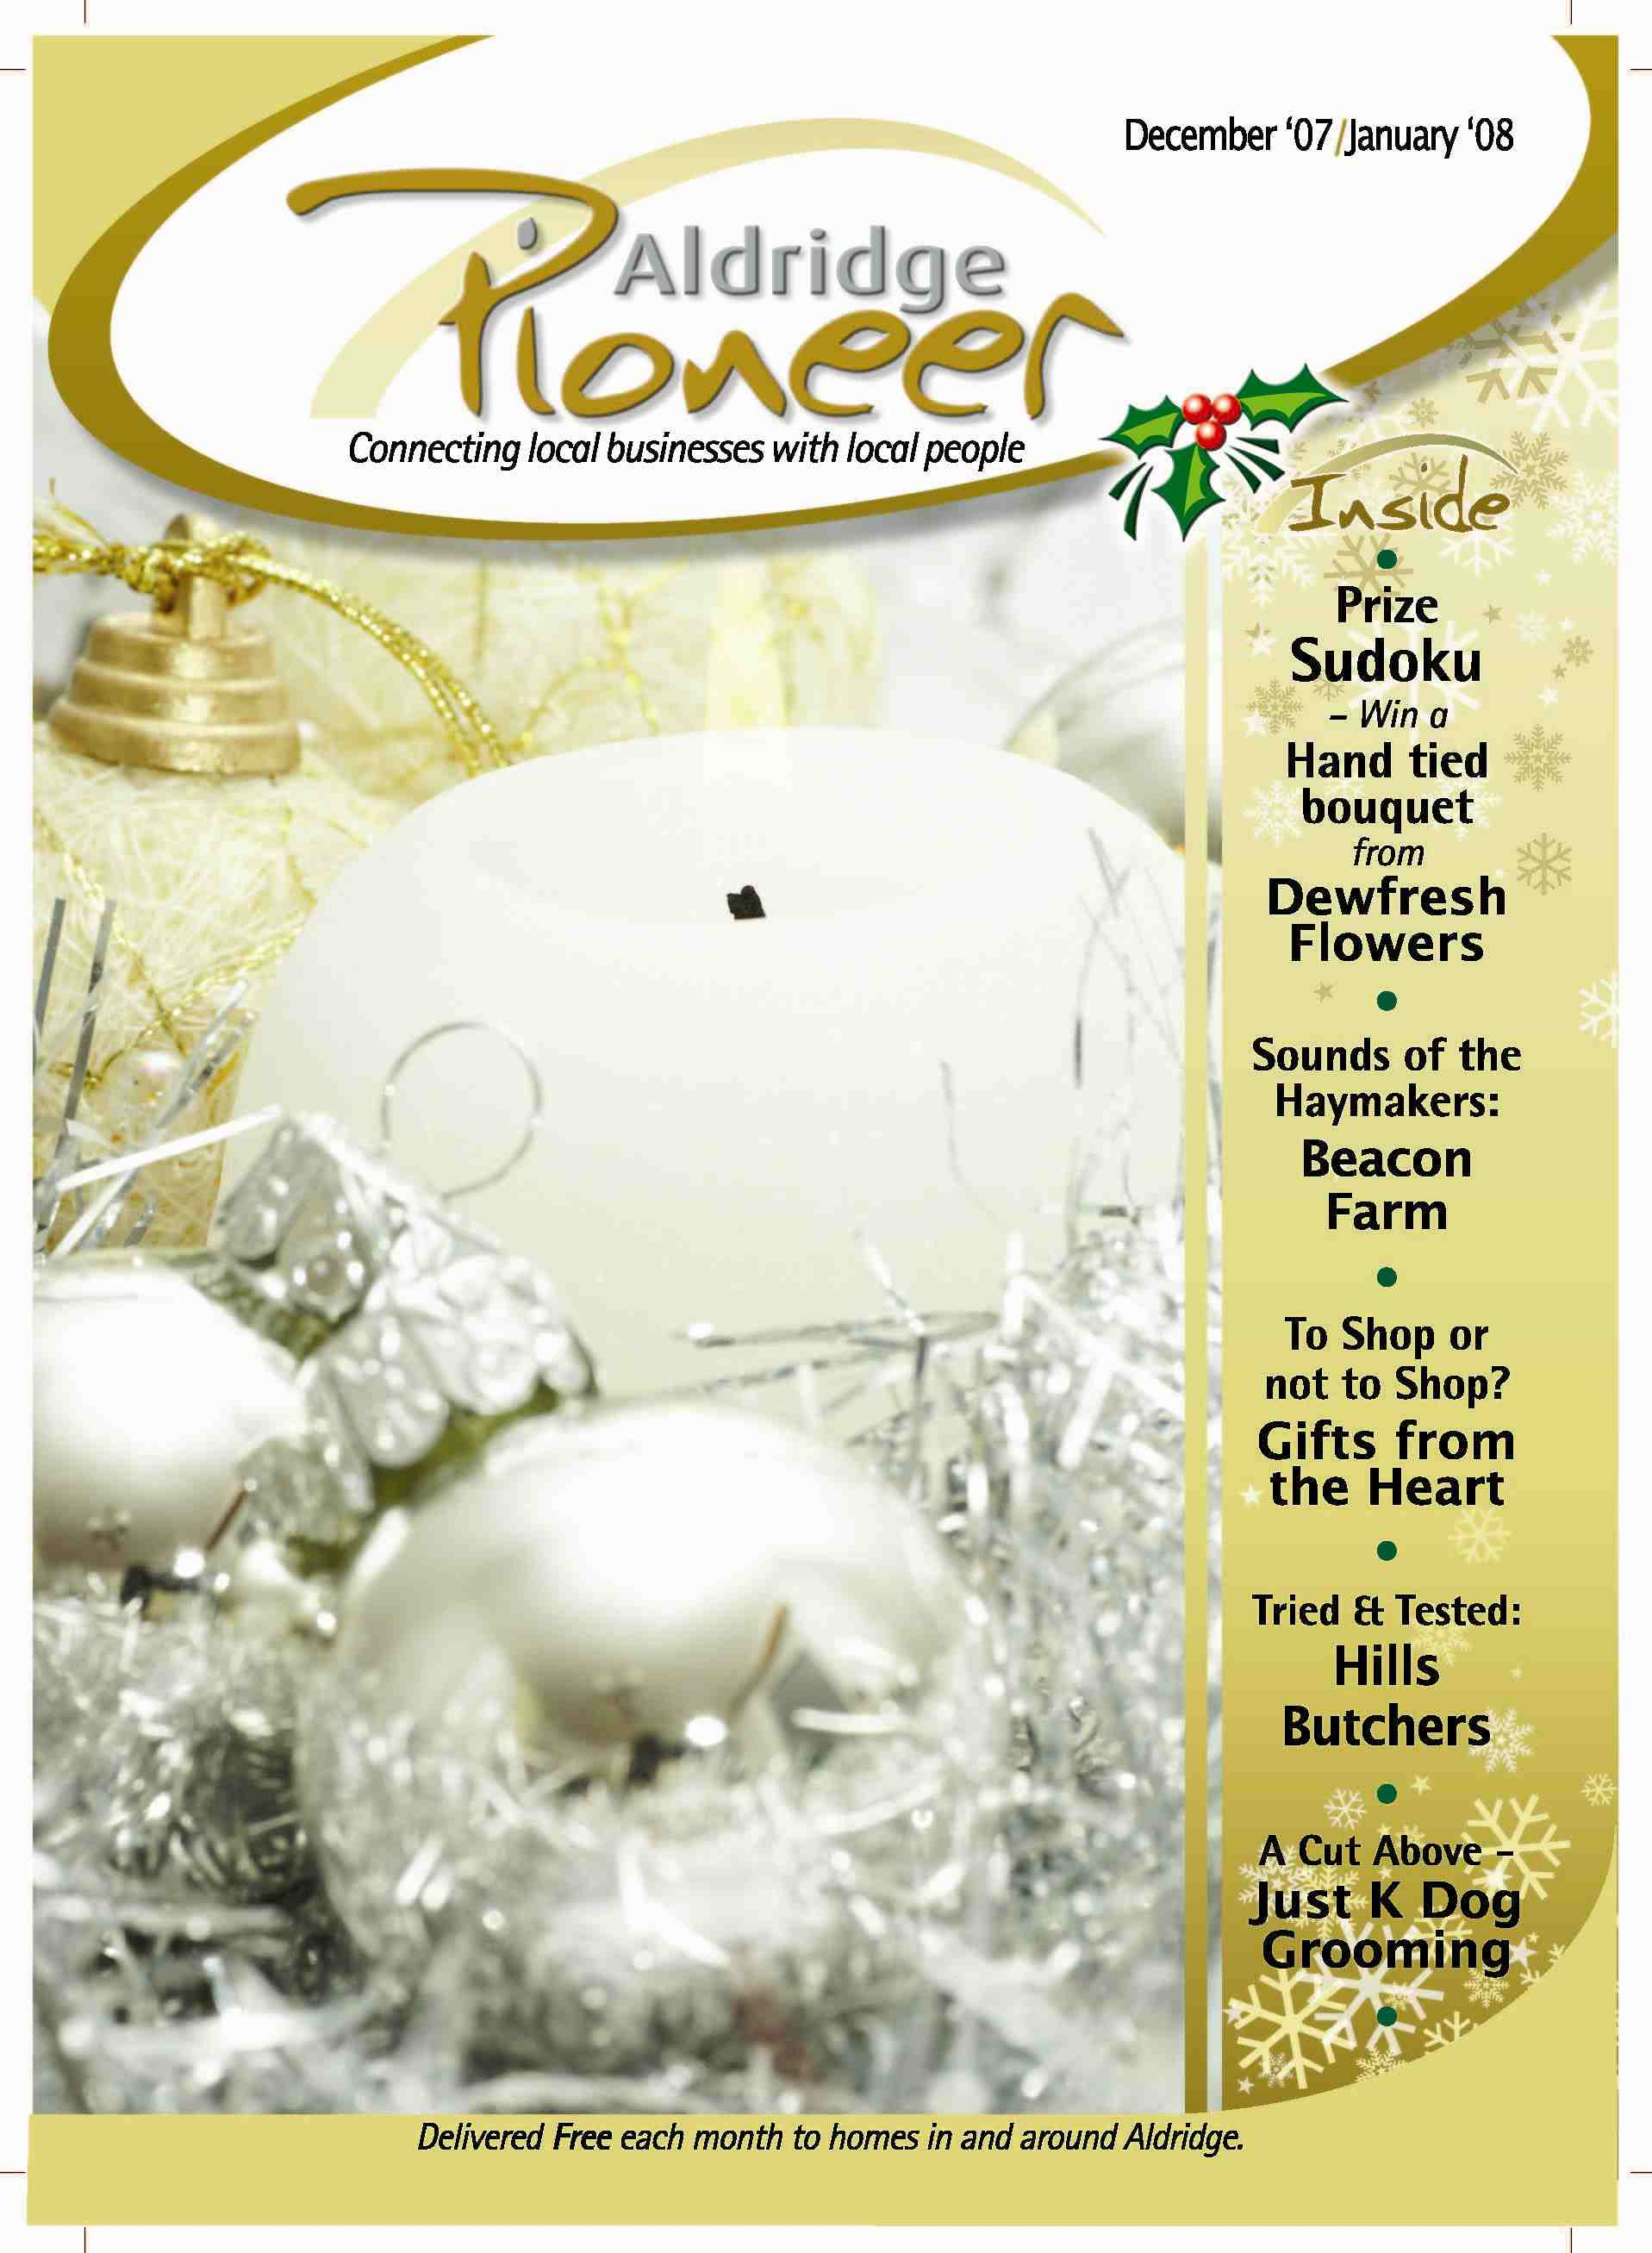 December 2007 Edition of Aldridge Pioneer Magazine